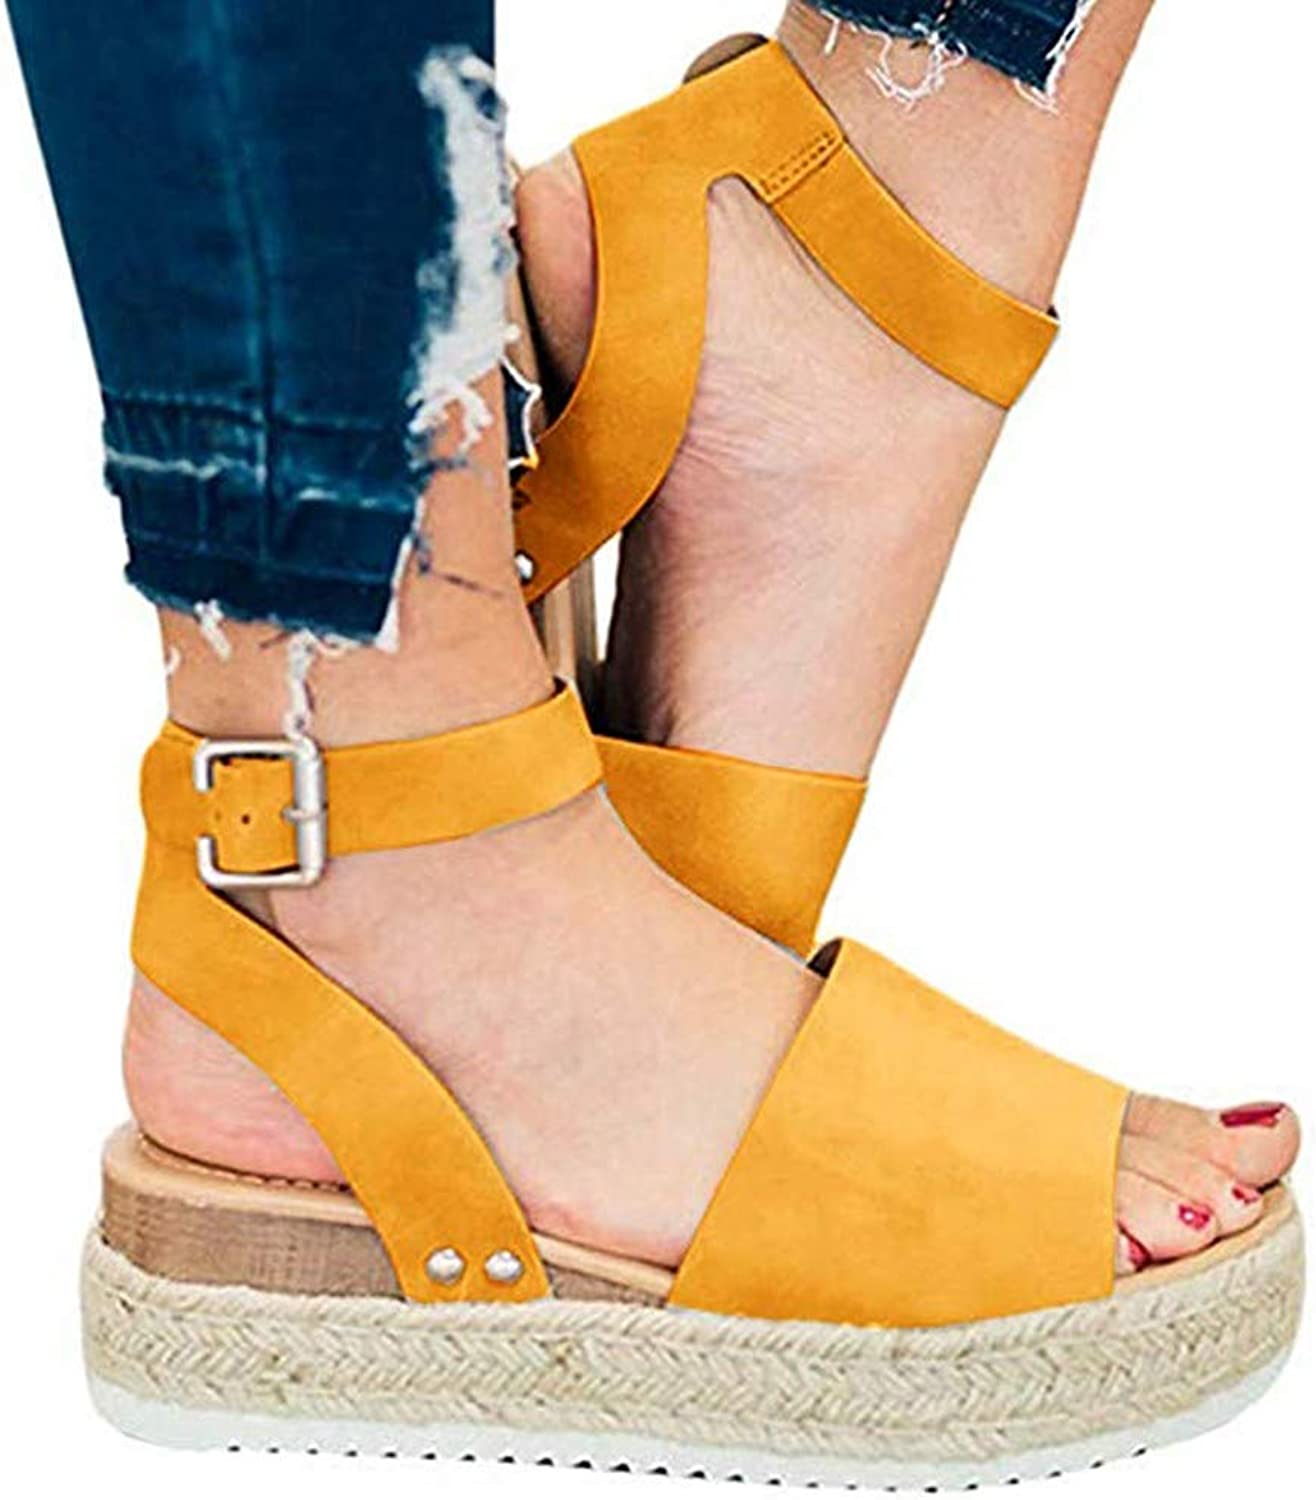 Women Summer Sandals Retro Peep Toe Wedges Buckle Ankle Strappy for Ladies Fashion Flat Lace Up 5 cm High Heels Leather Slingback Platform shoes Casual Comfy Espadrilles(Yellow),Yellow,43